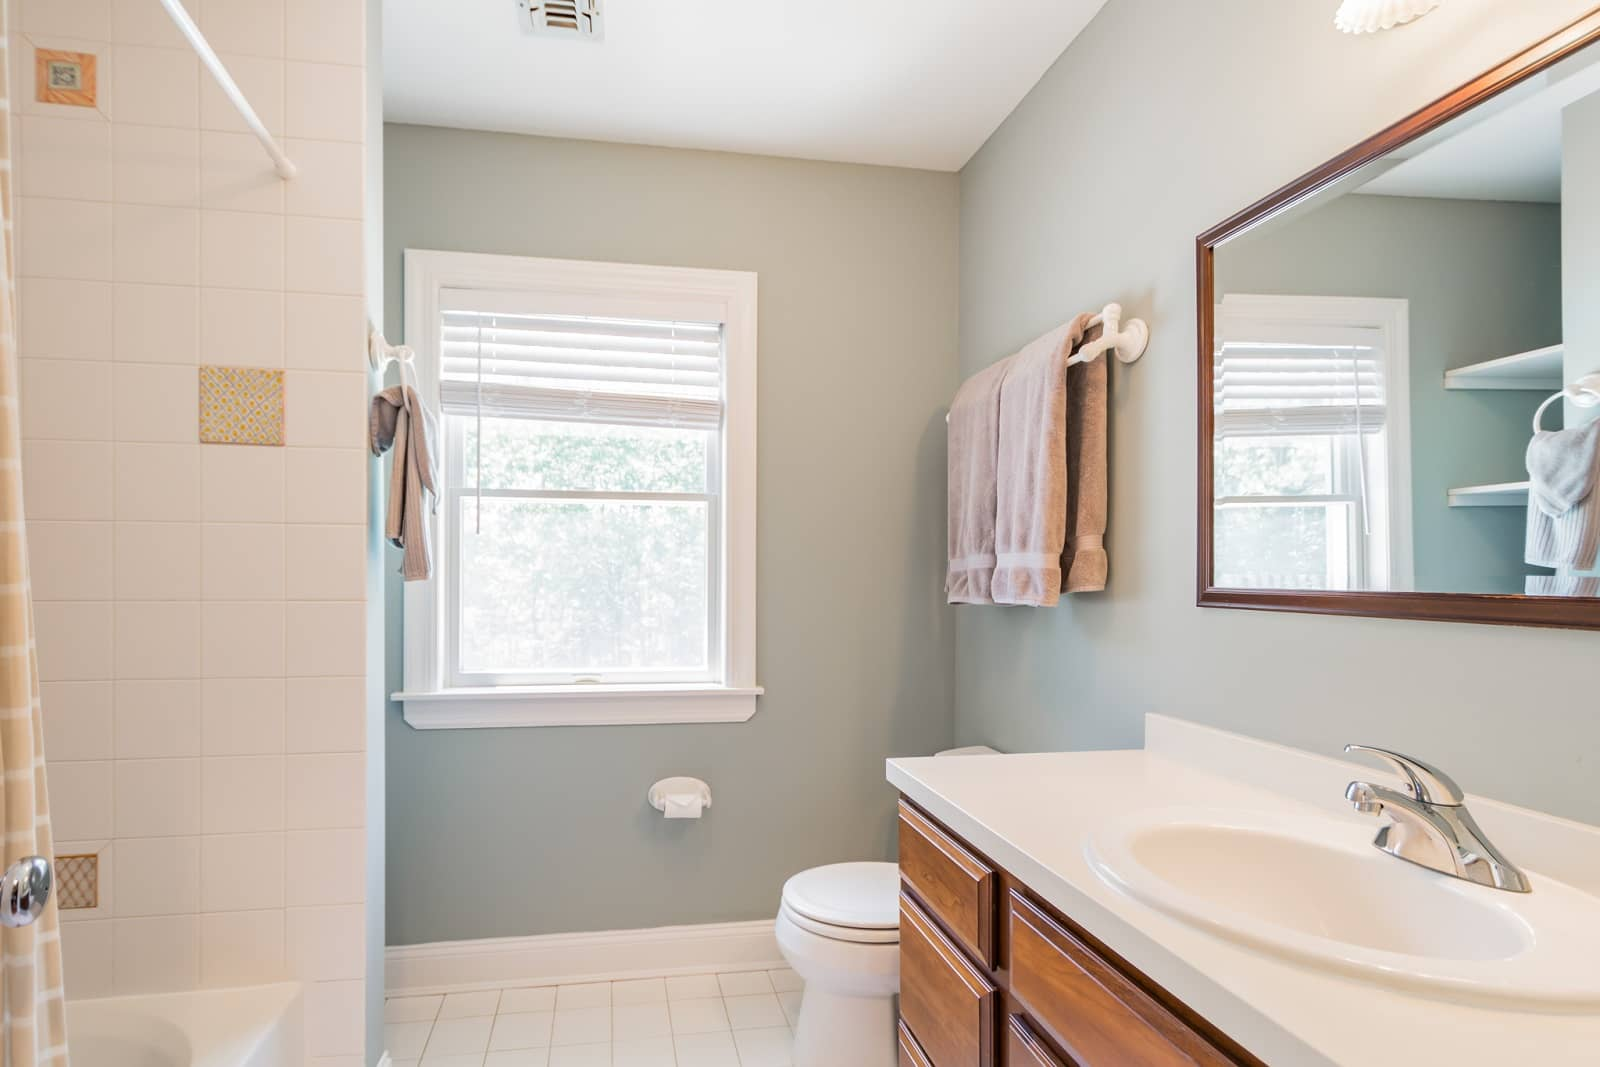 Real Estate Photography in The Hamptons - NY - USA - Bathroom View